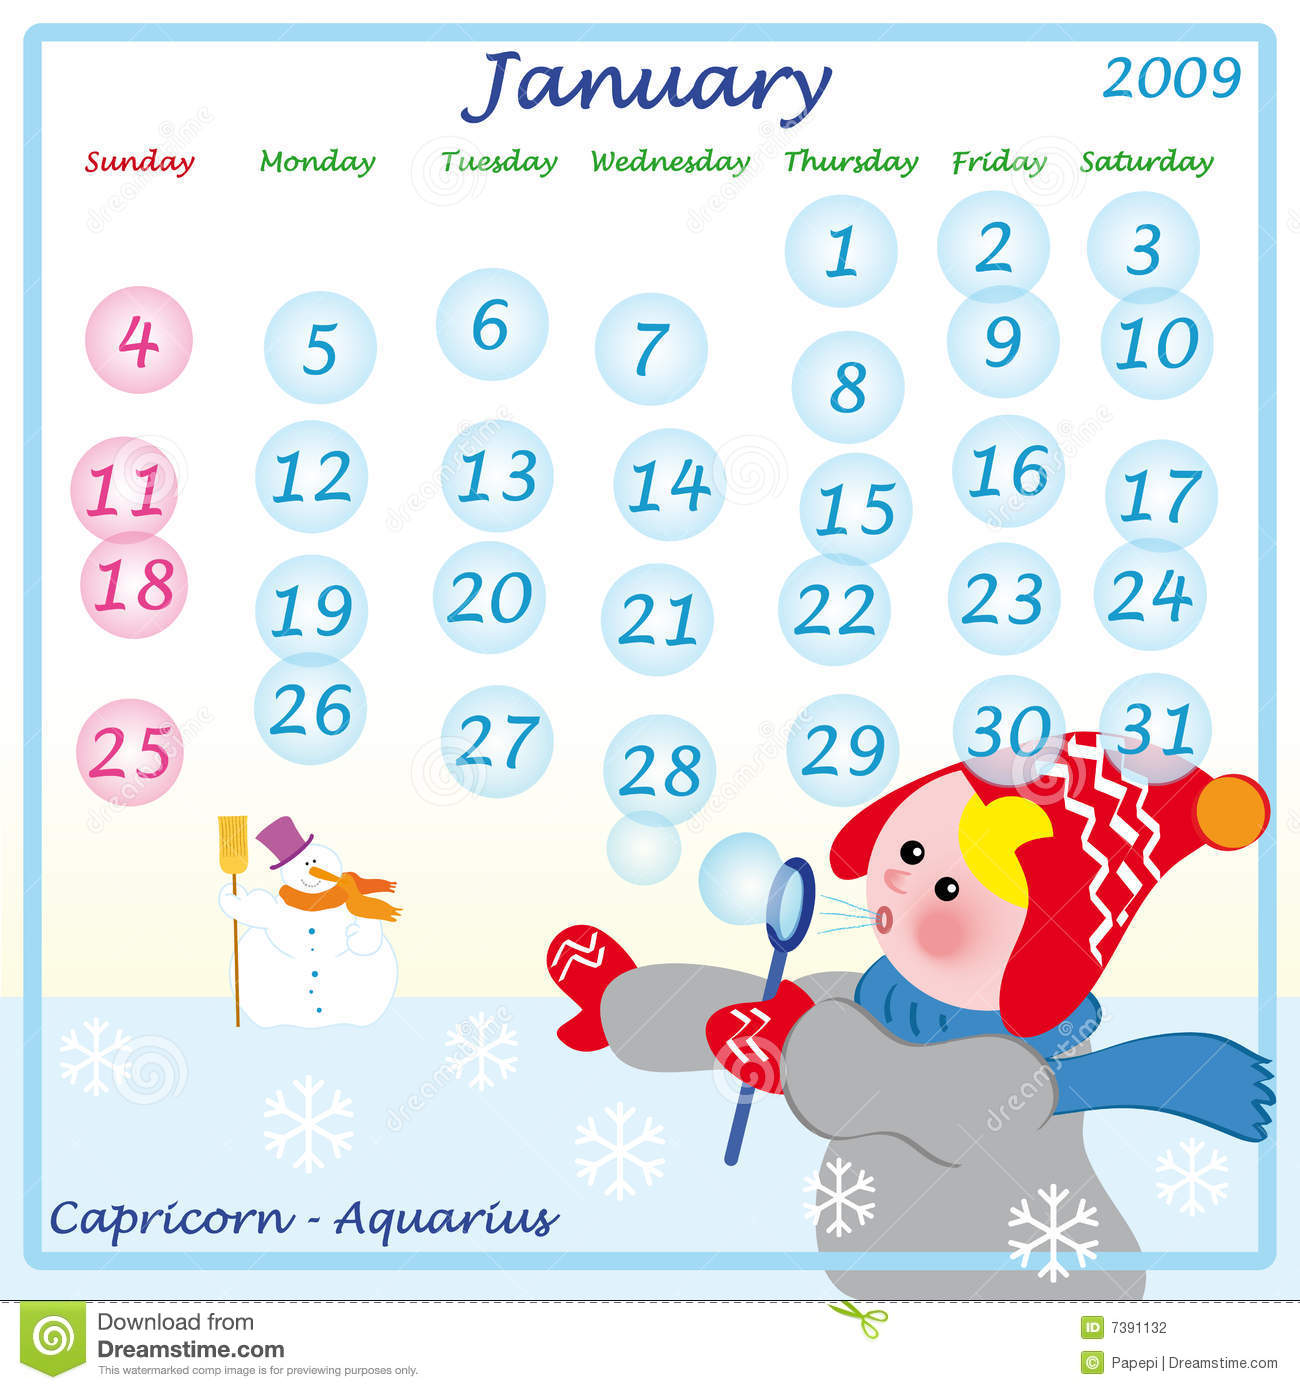 January Calendar 2009 : Calendar january stock photography image